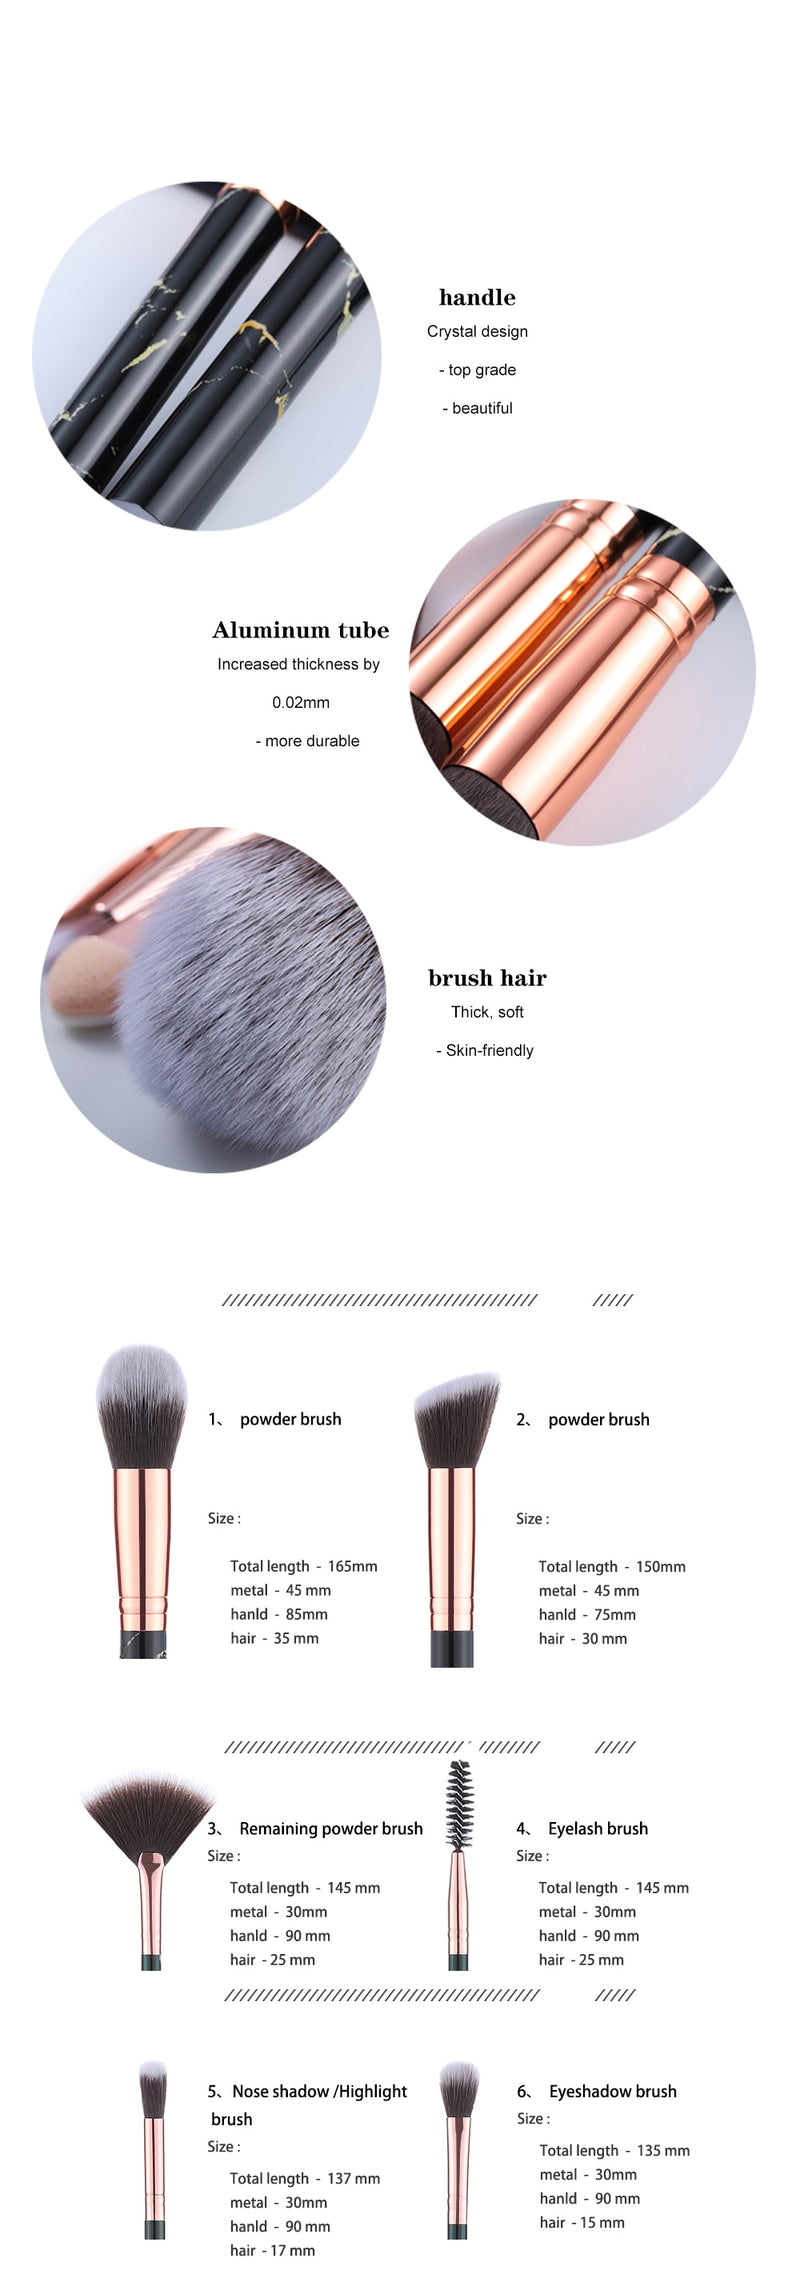 5/15Pcs Makeup Brushes Tool Set Cosmetic Powder Eye Shadow Foundation Blush Blending Beauty Make Up Brush - The Brush Brand